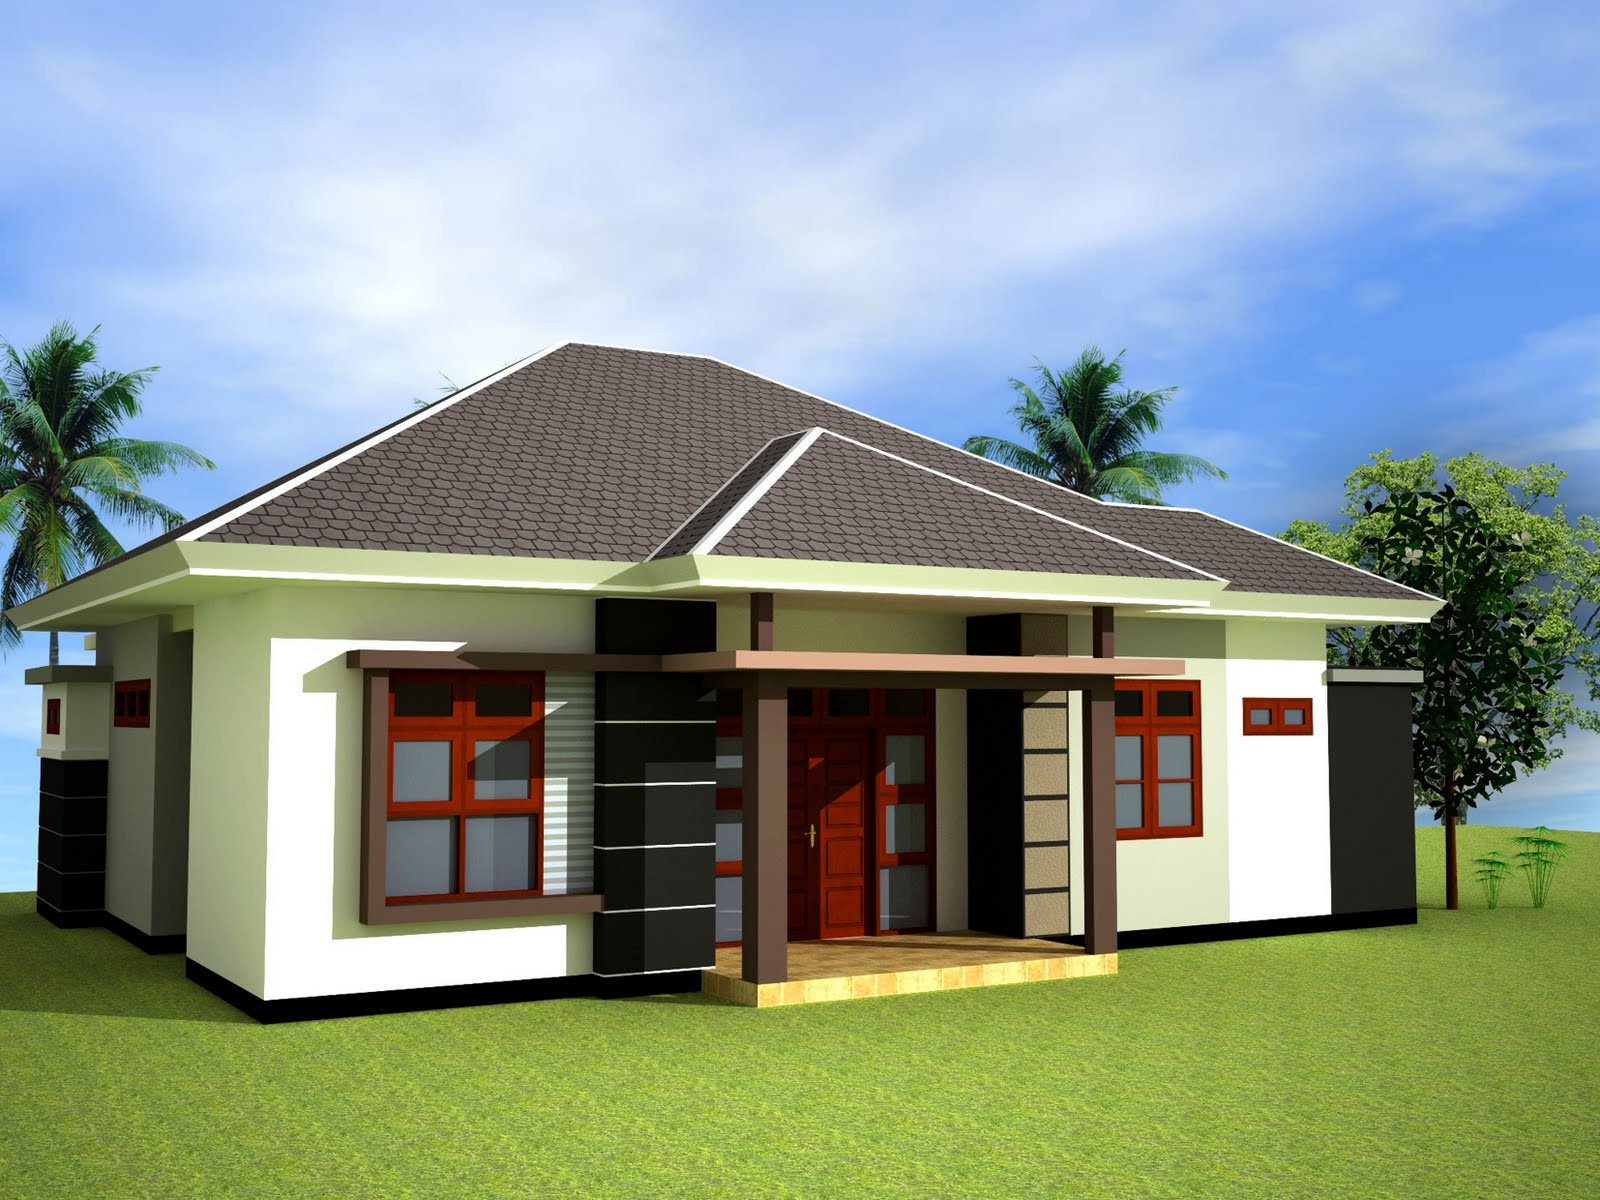 https://simemet.files.wordpress.com/2014/11/teras-rumah-minimalis4.jpg